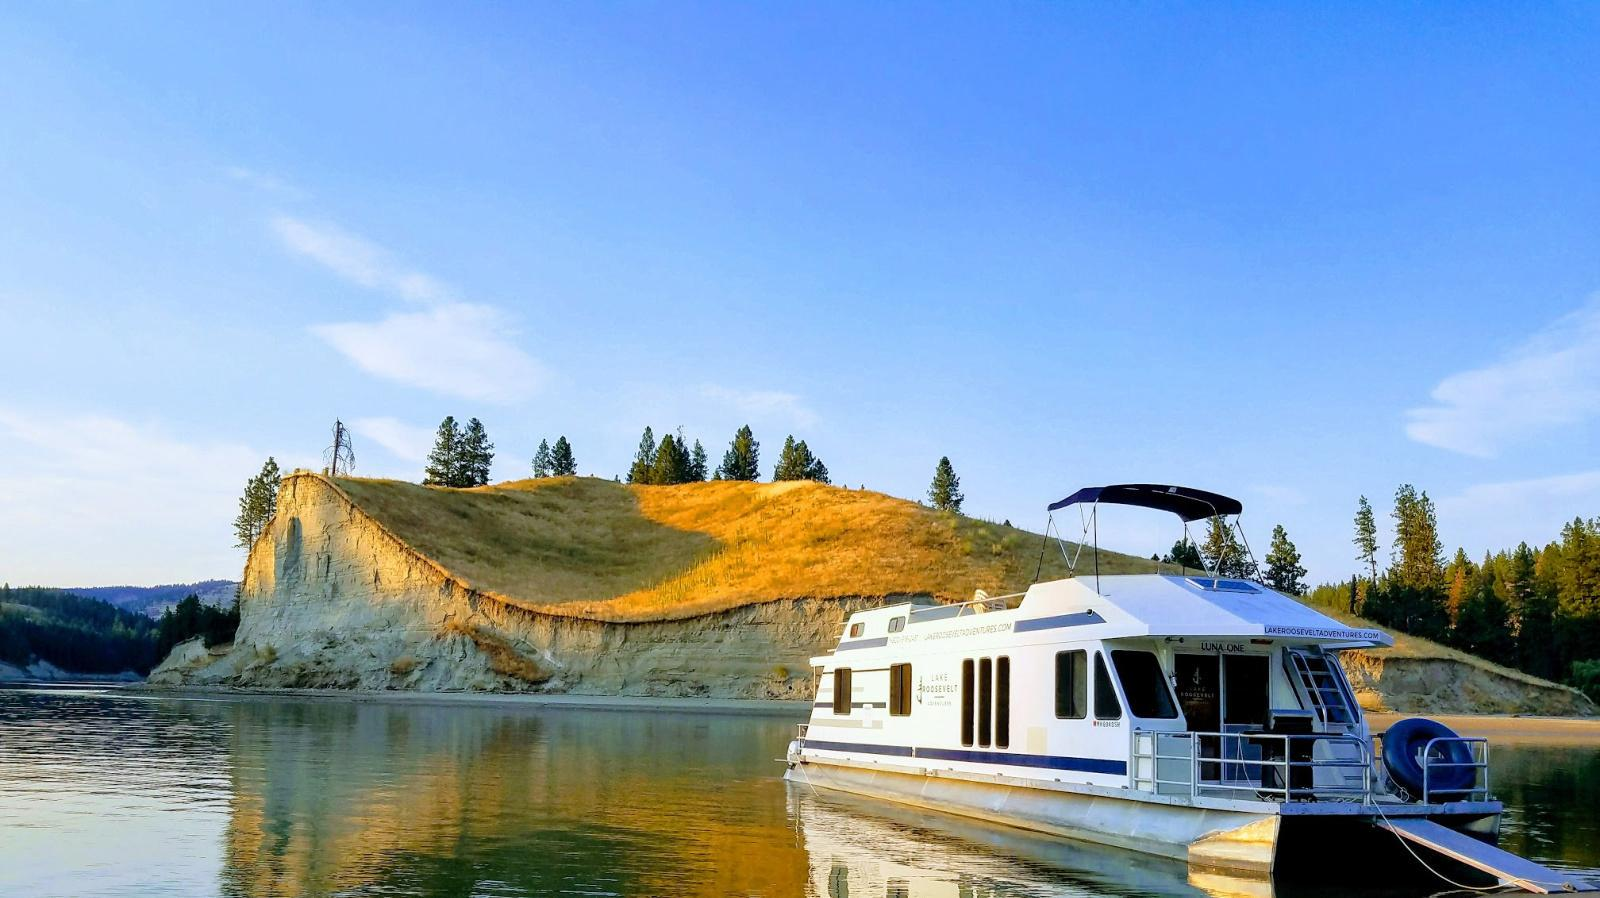 The Luna Houseboat from Seven Bays Marina on Lake Roosevelt